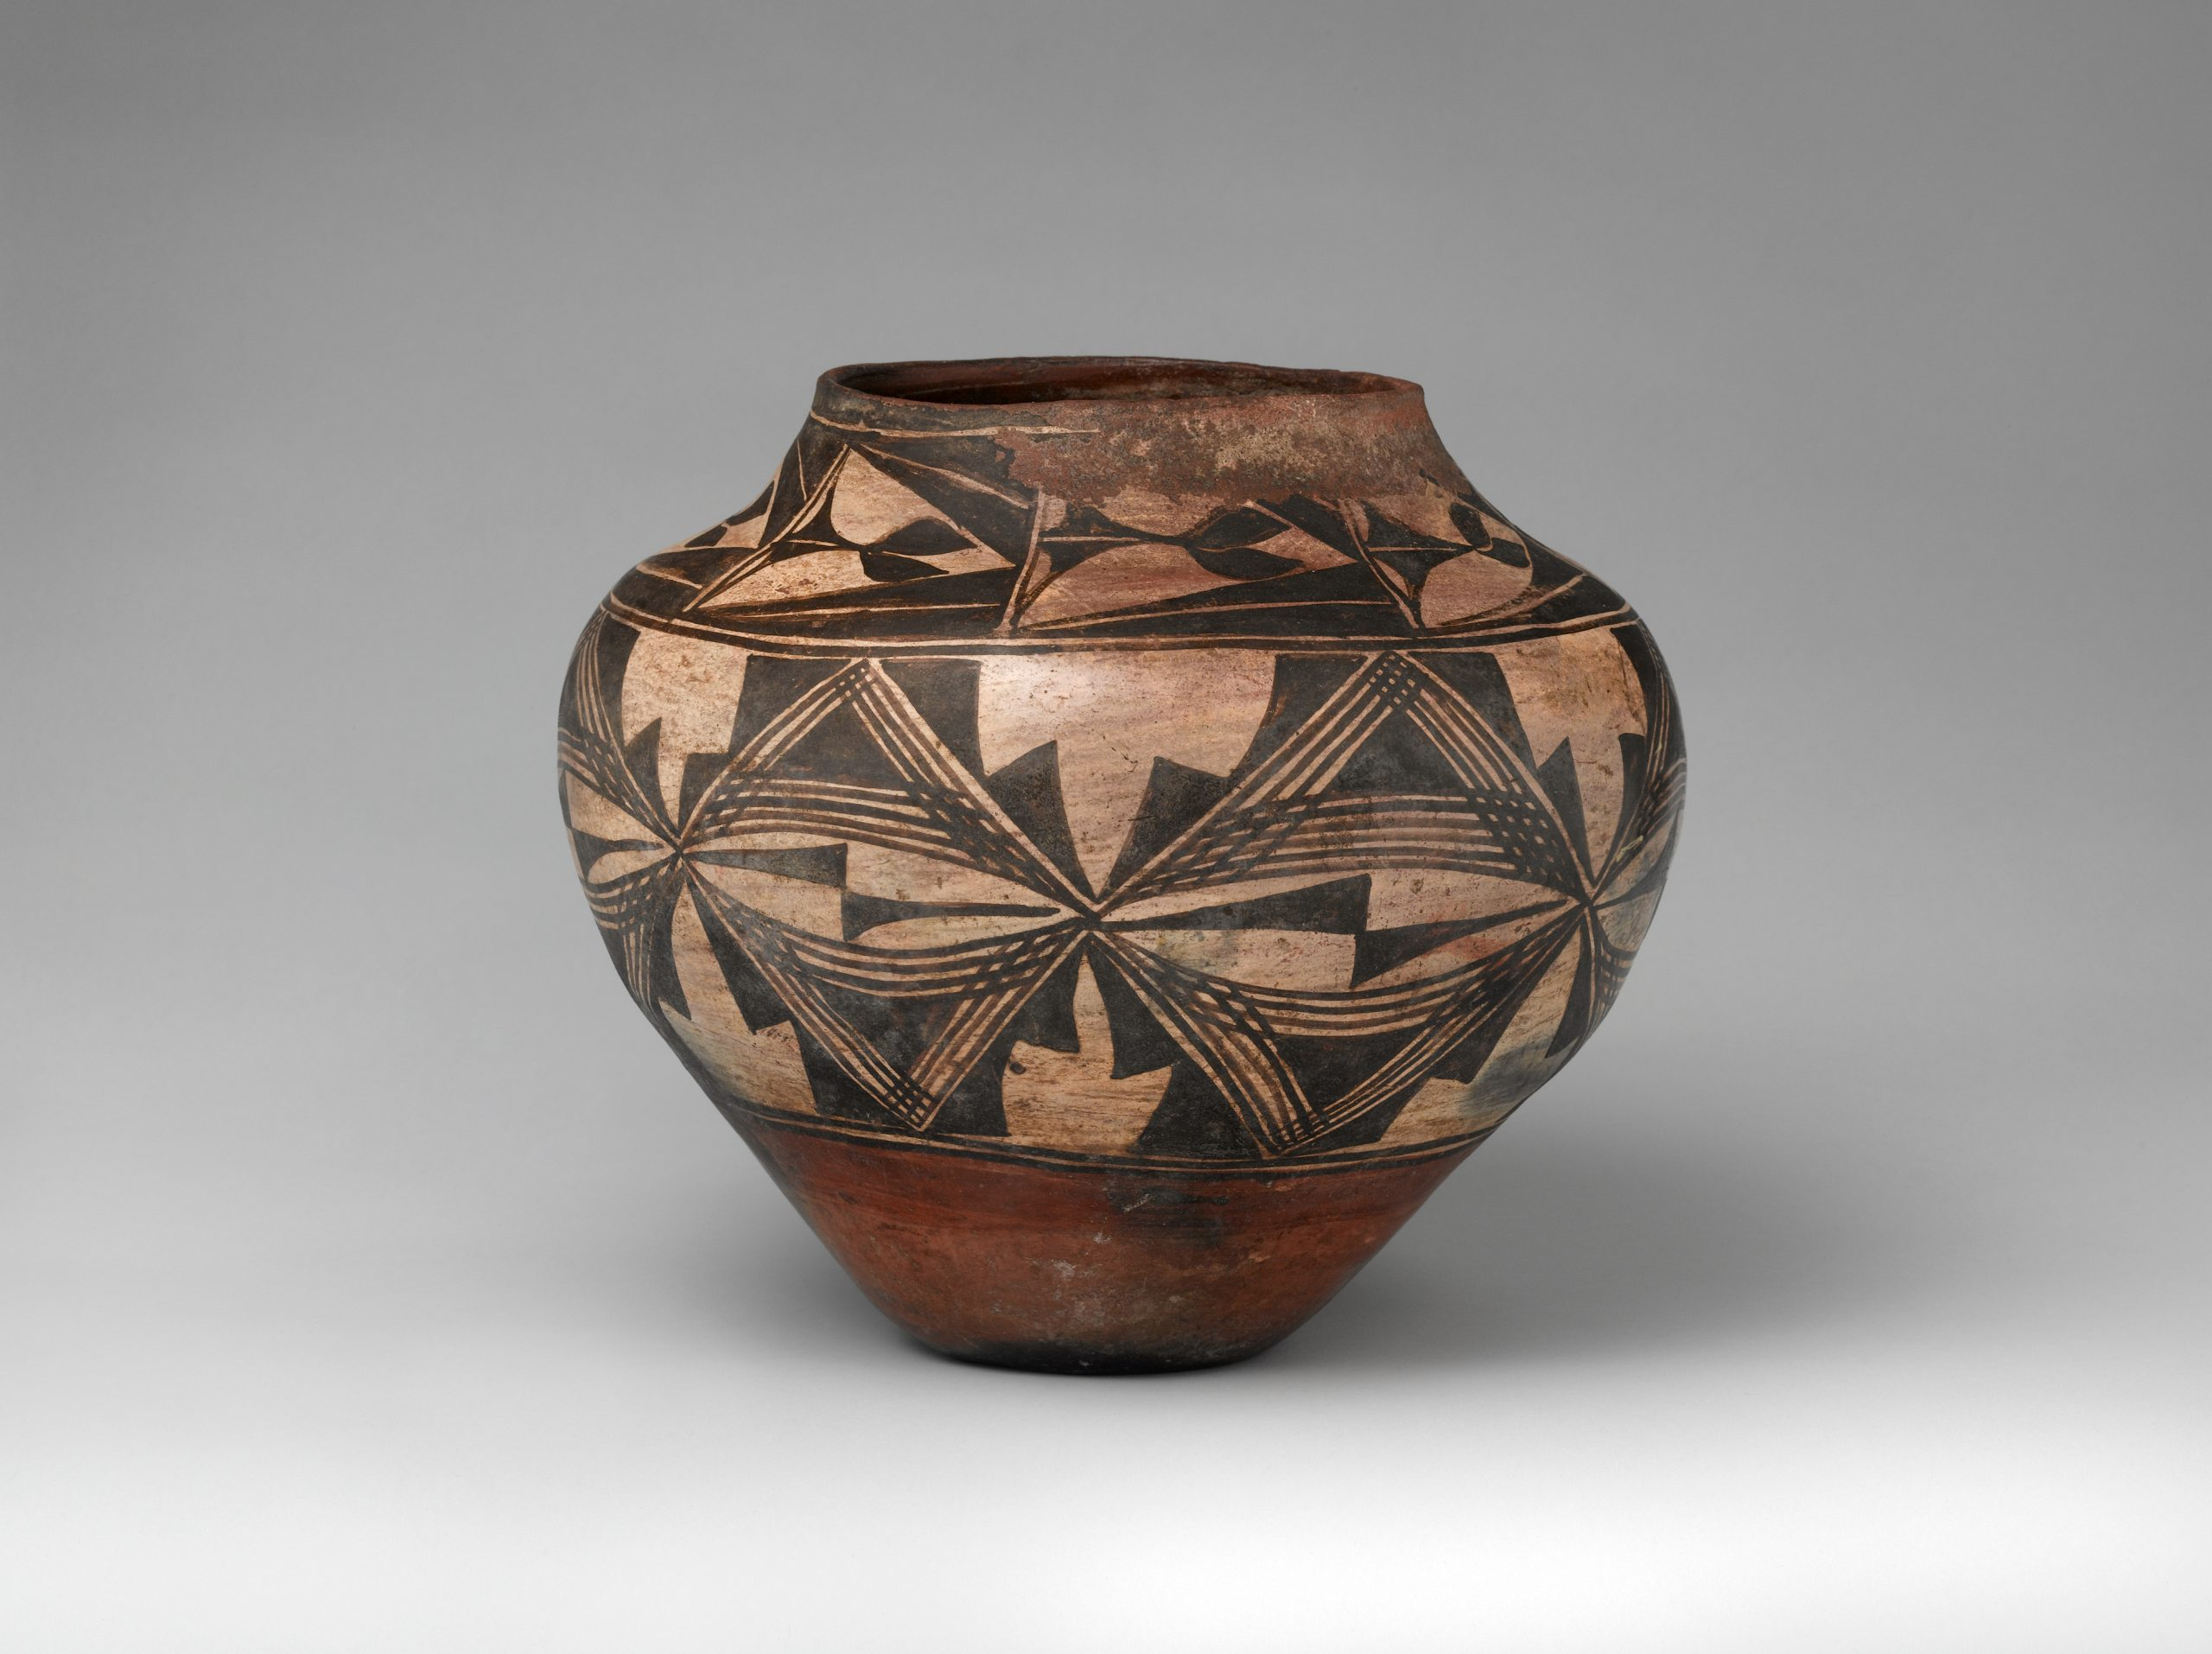 A Zia pot painted brown, black, and beige, with two bands of geometric designs.